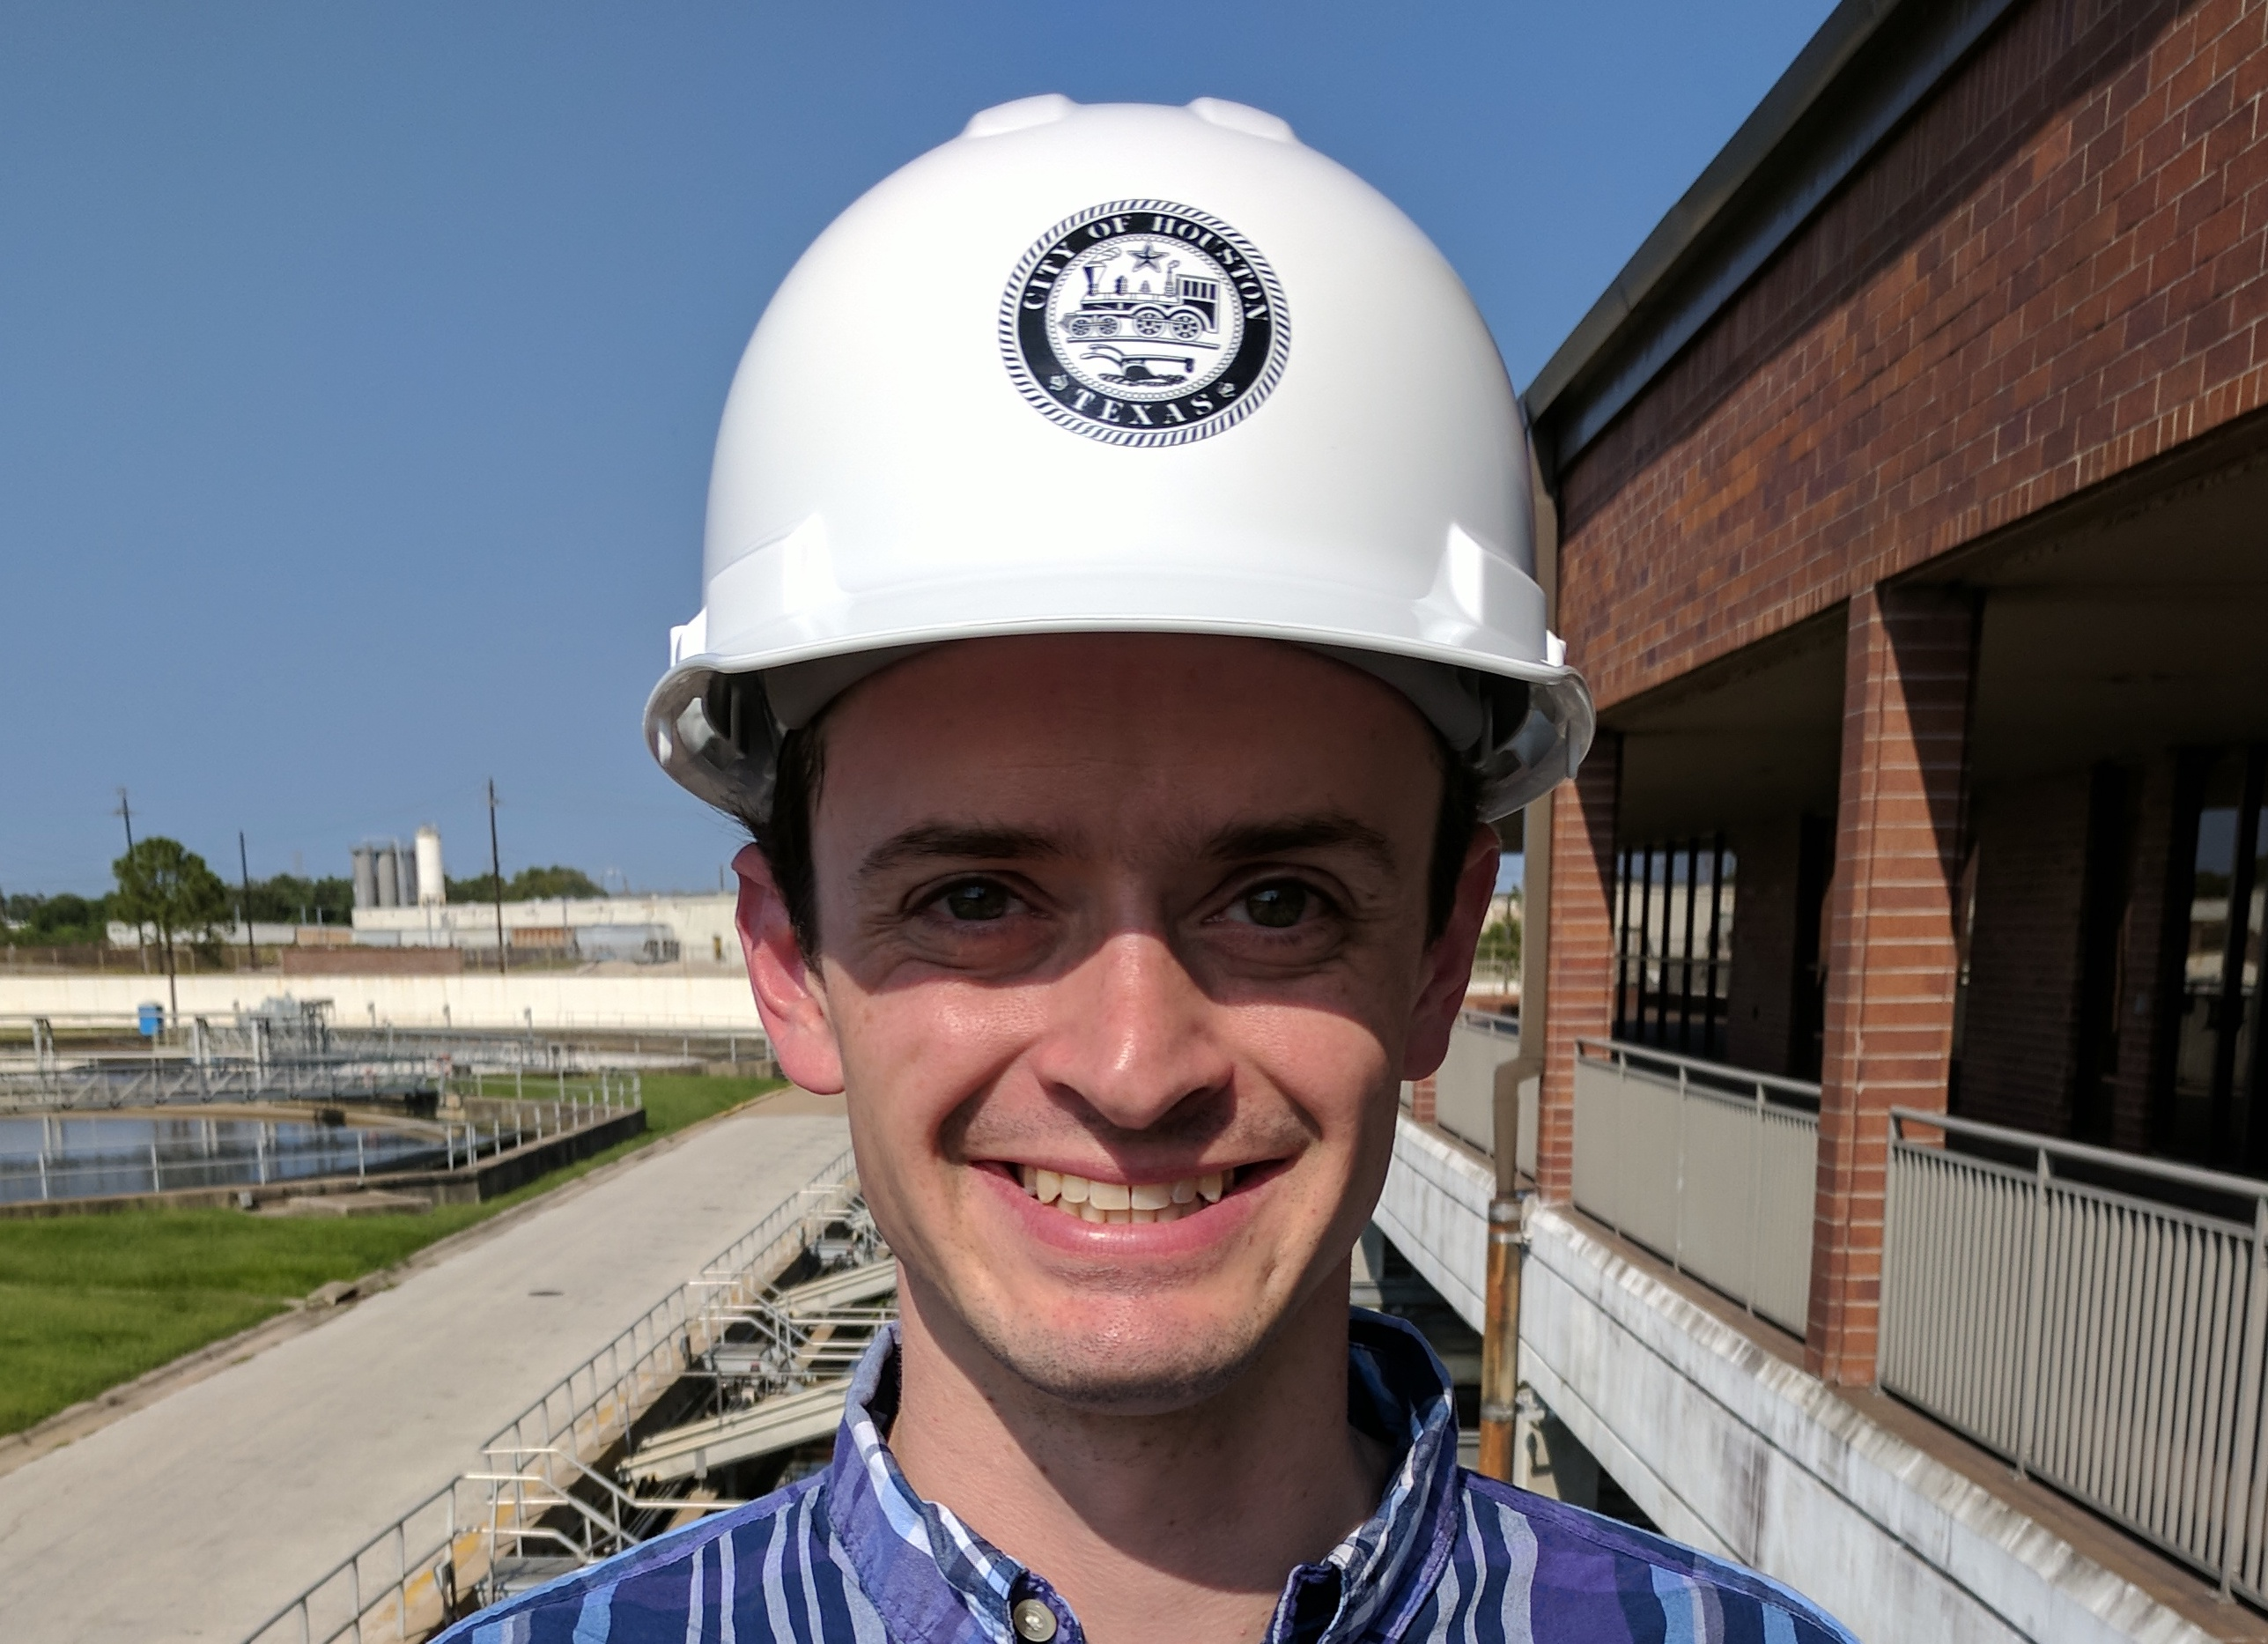 Bob Crossen writes on Water & Wastes Digest's young professionals nominations